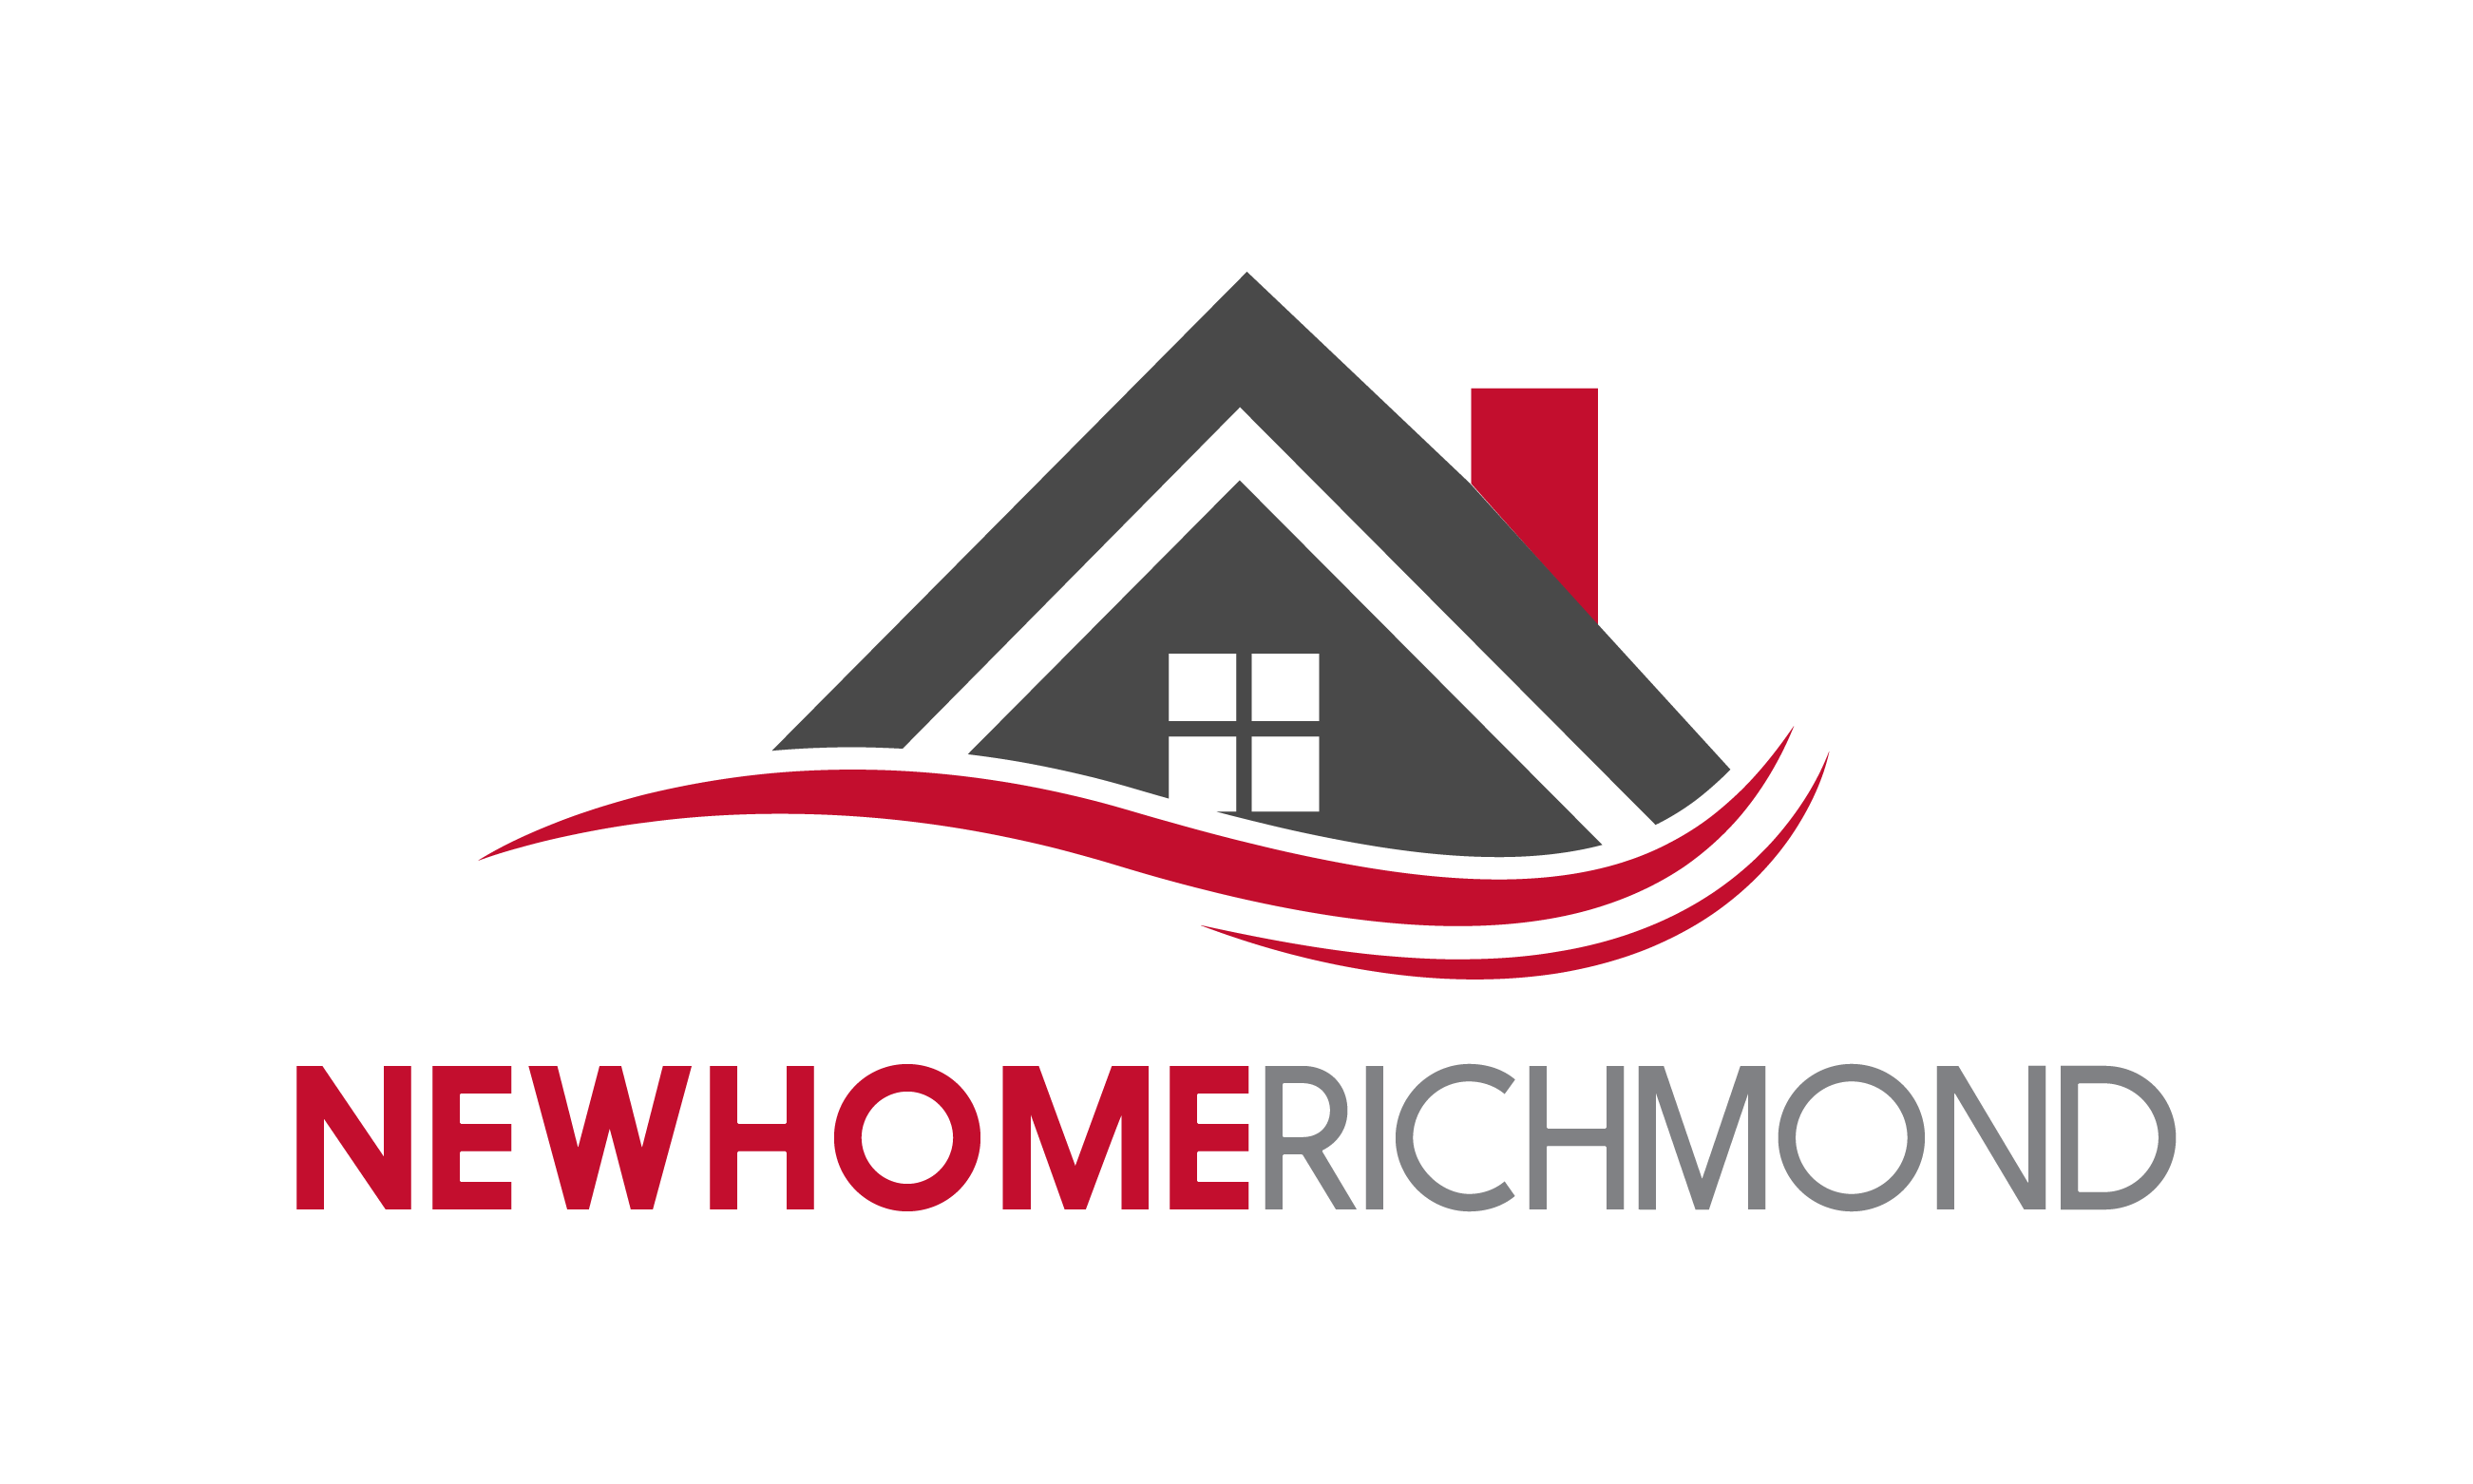 New Home Richmond of Keller Williams